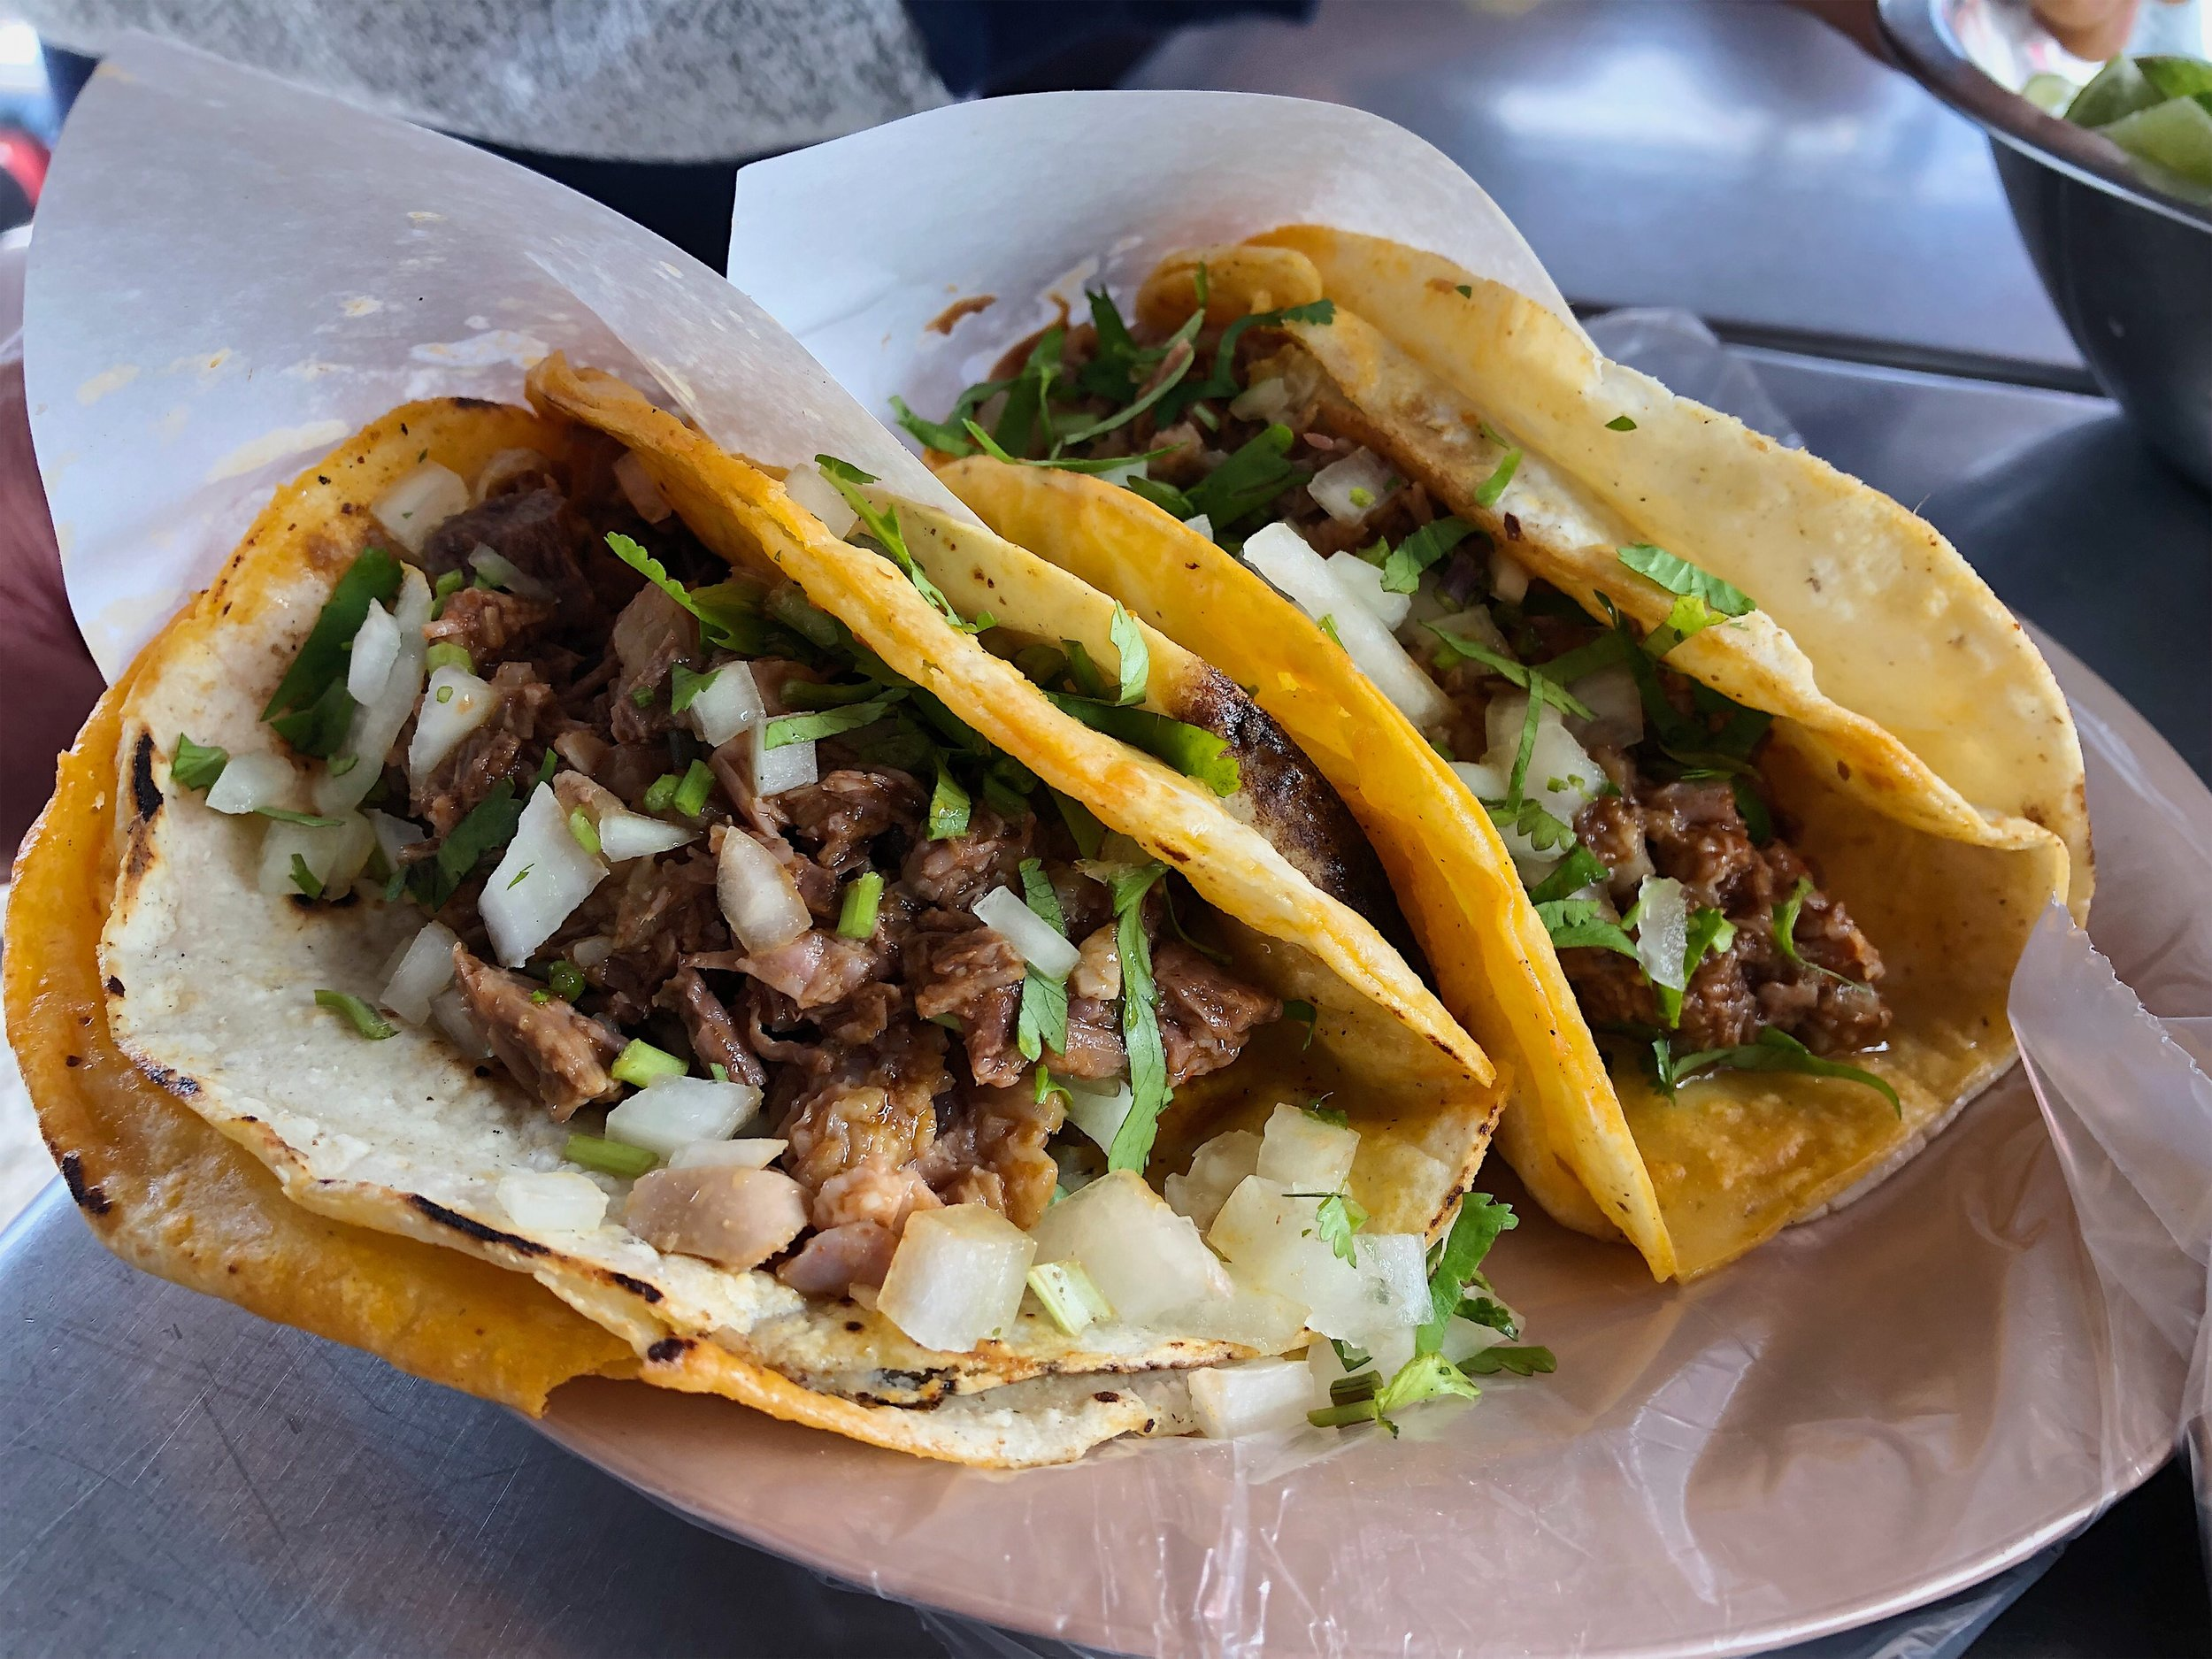 One of the best parts about visiting border breweries? Proximity to fresh tacos!